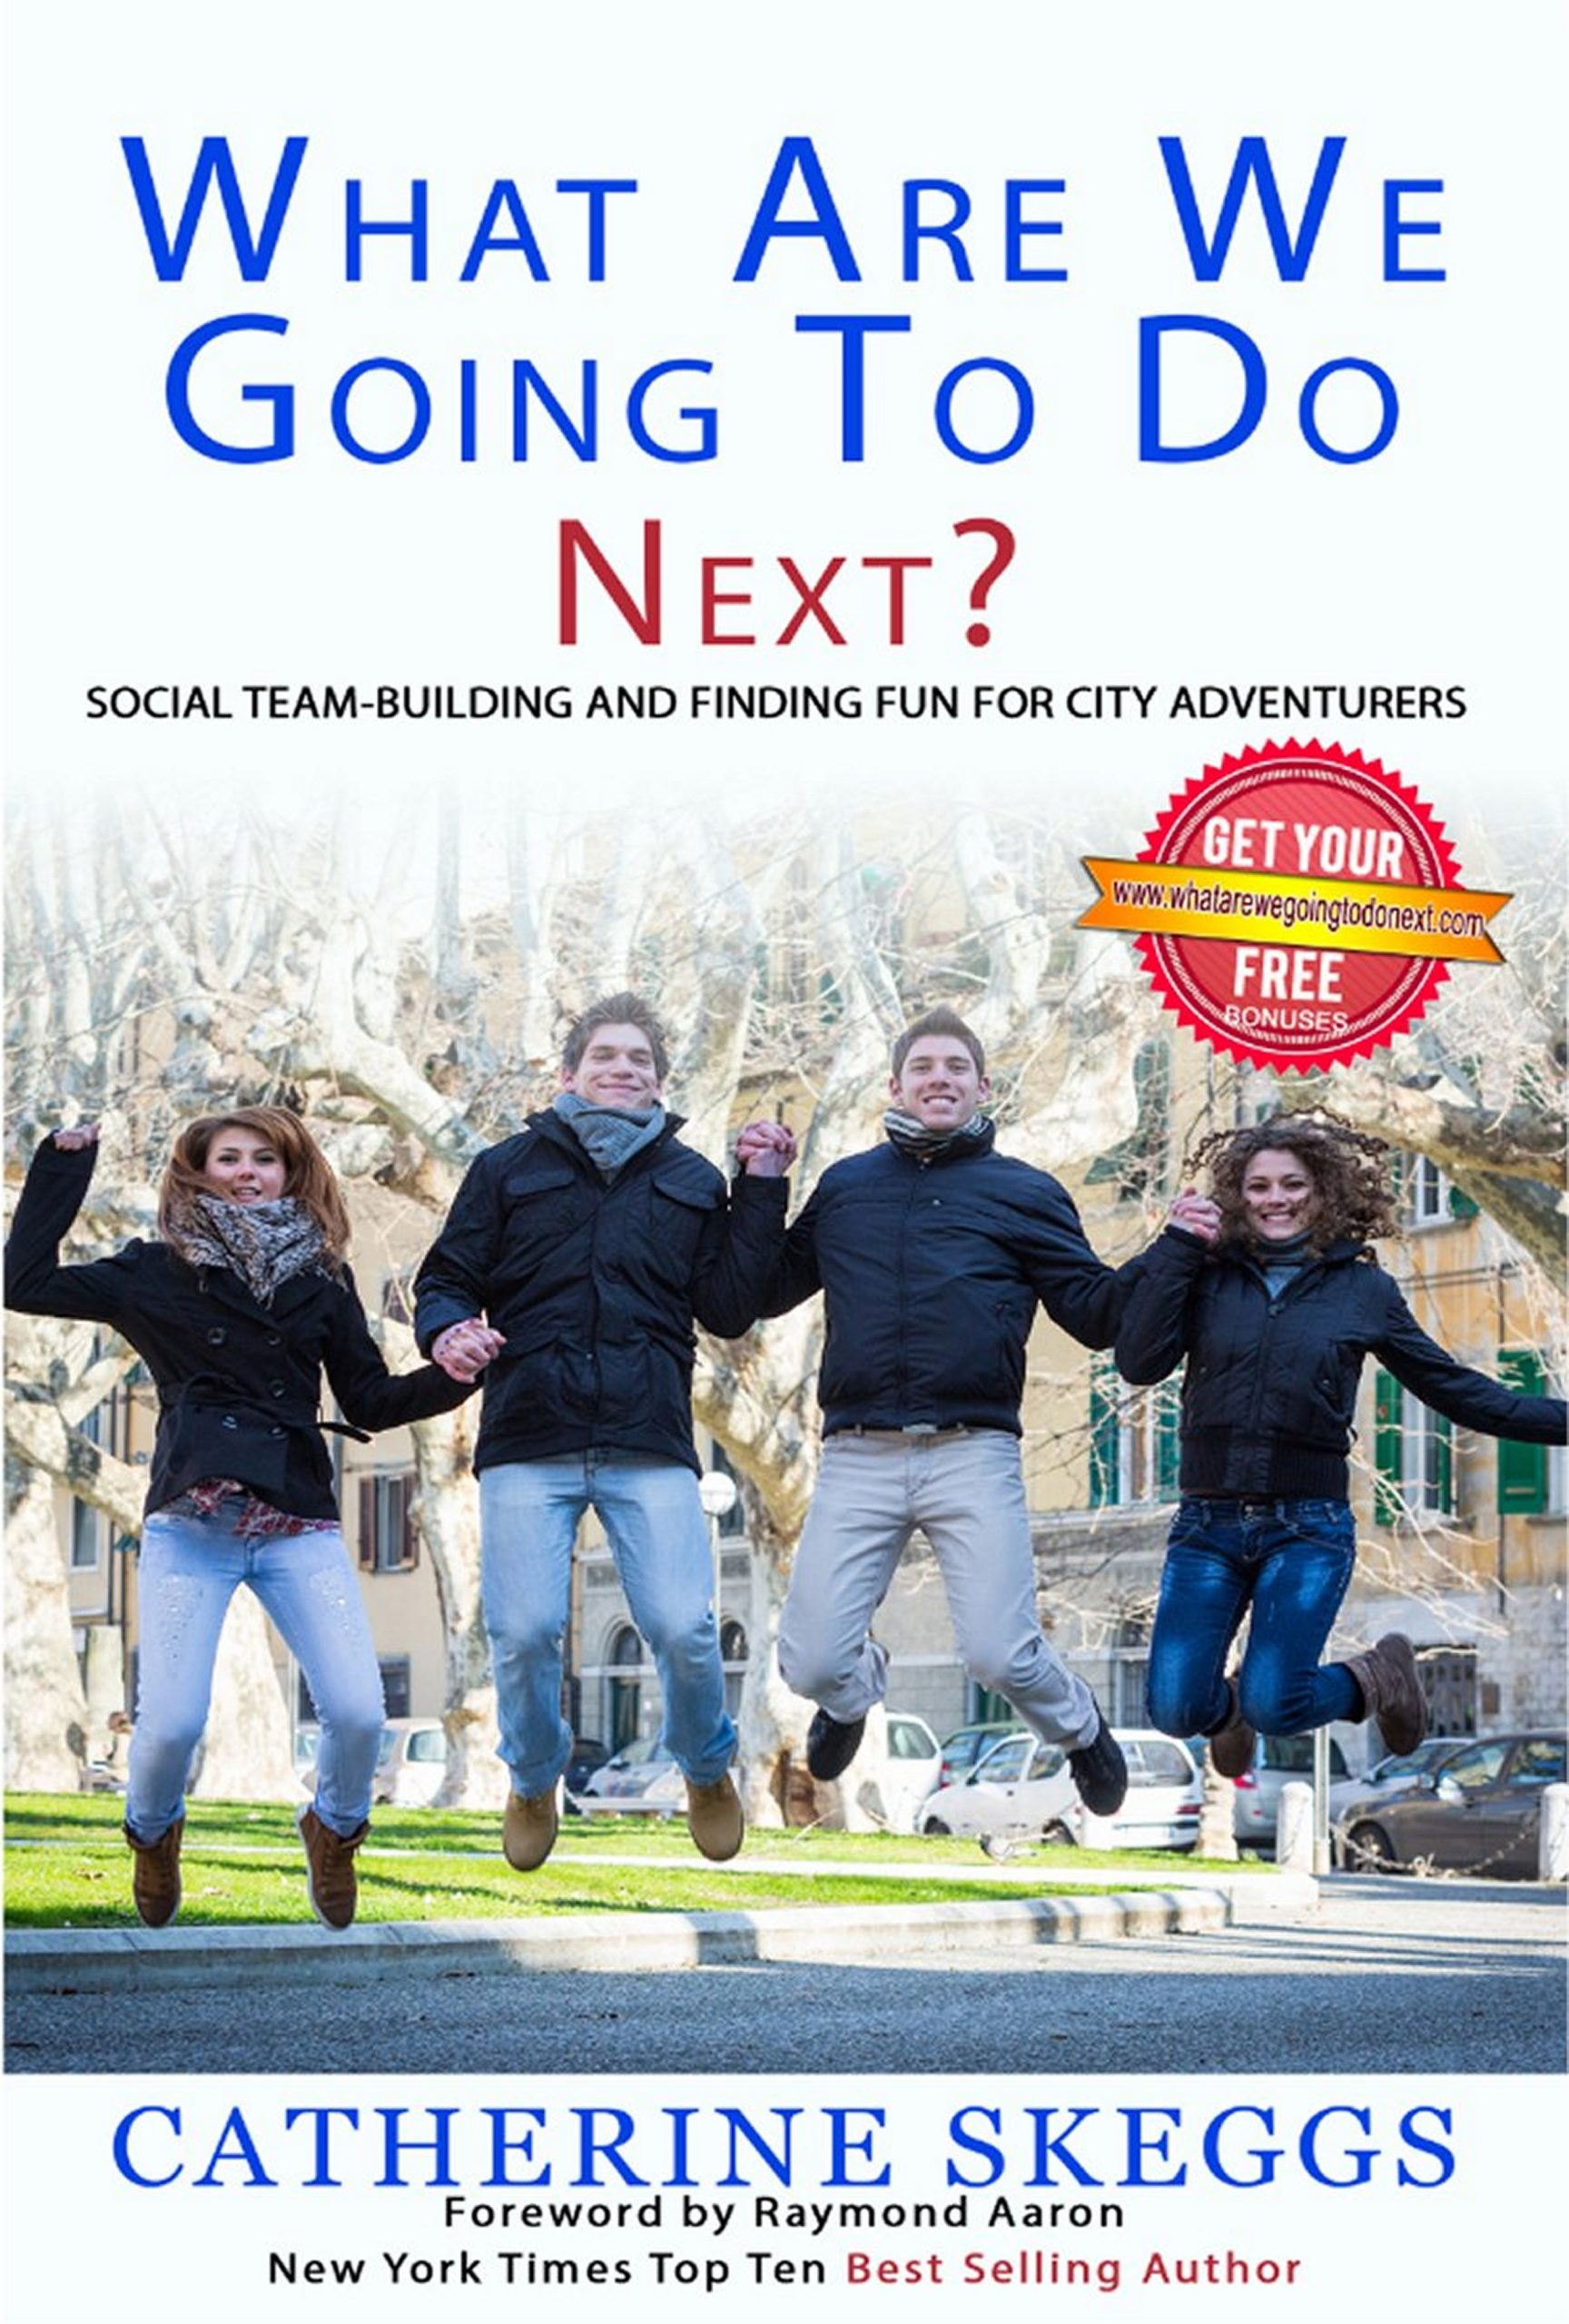 What Are We Going To Do Next? The book on Social Team Building